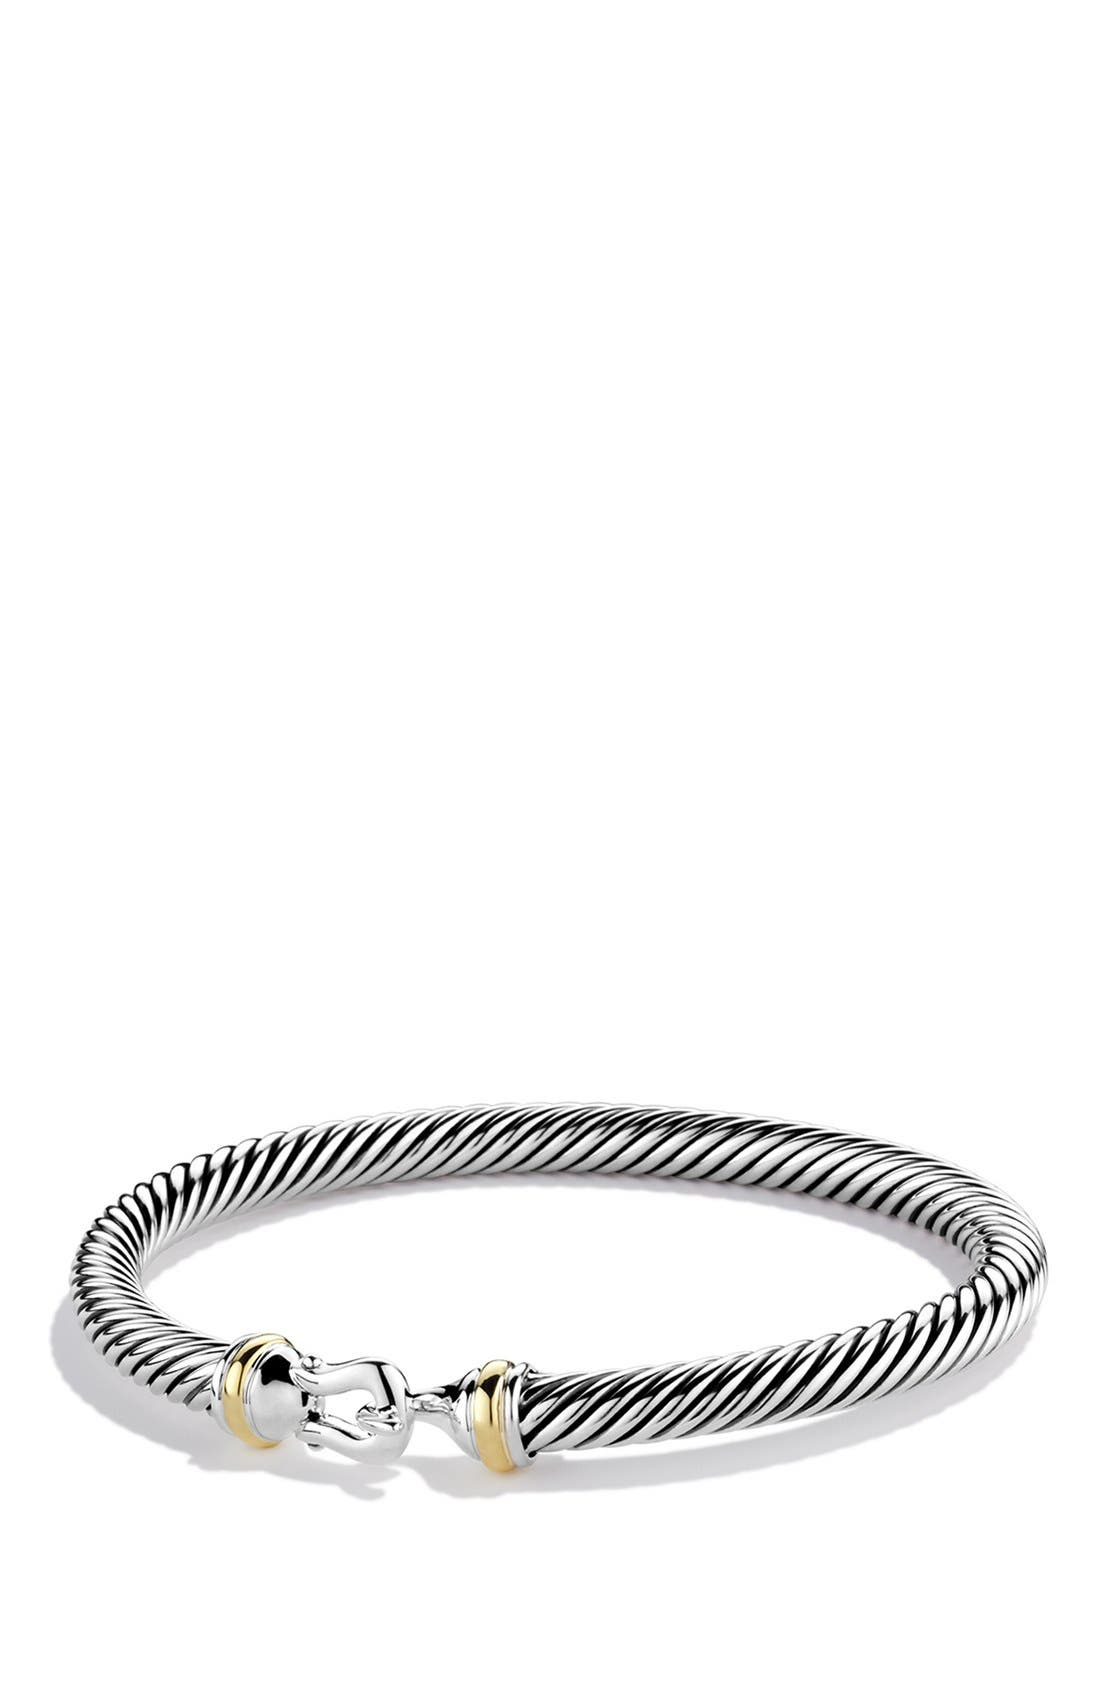 Main Image - David Yurman Cable Classic Buckle Bracelet with 18K Gold, 5mm